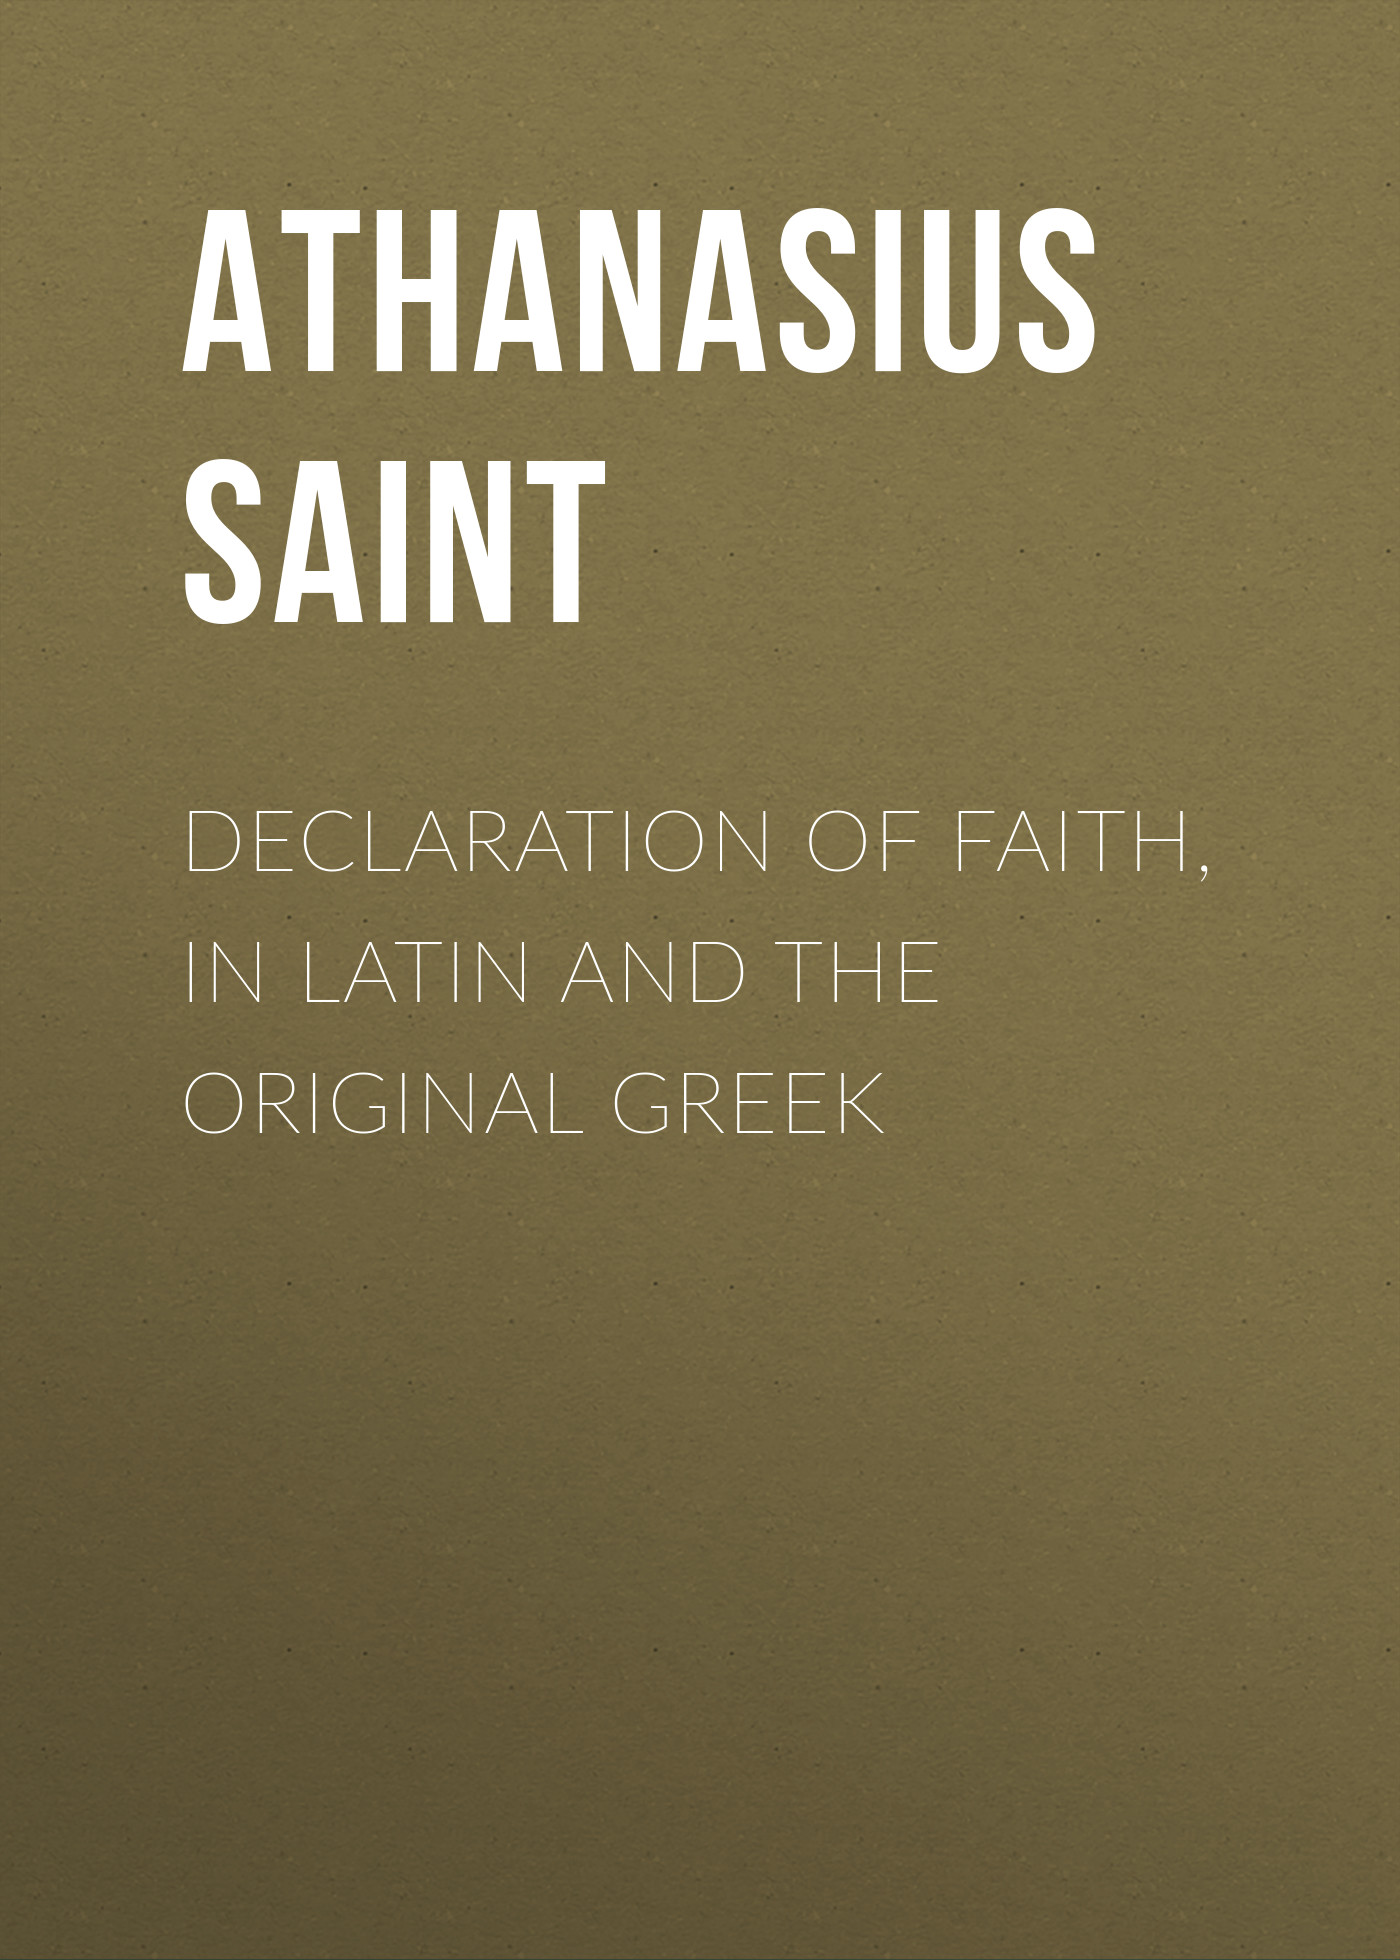 Athanasius Saint Patriarch of Alexandria Declaration of Faith, in Latin and the Original Greek airreia faith pierce pinky promise journey of faith in the waiting